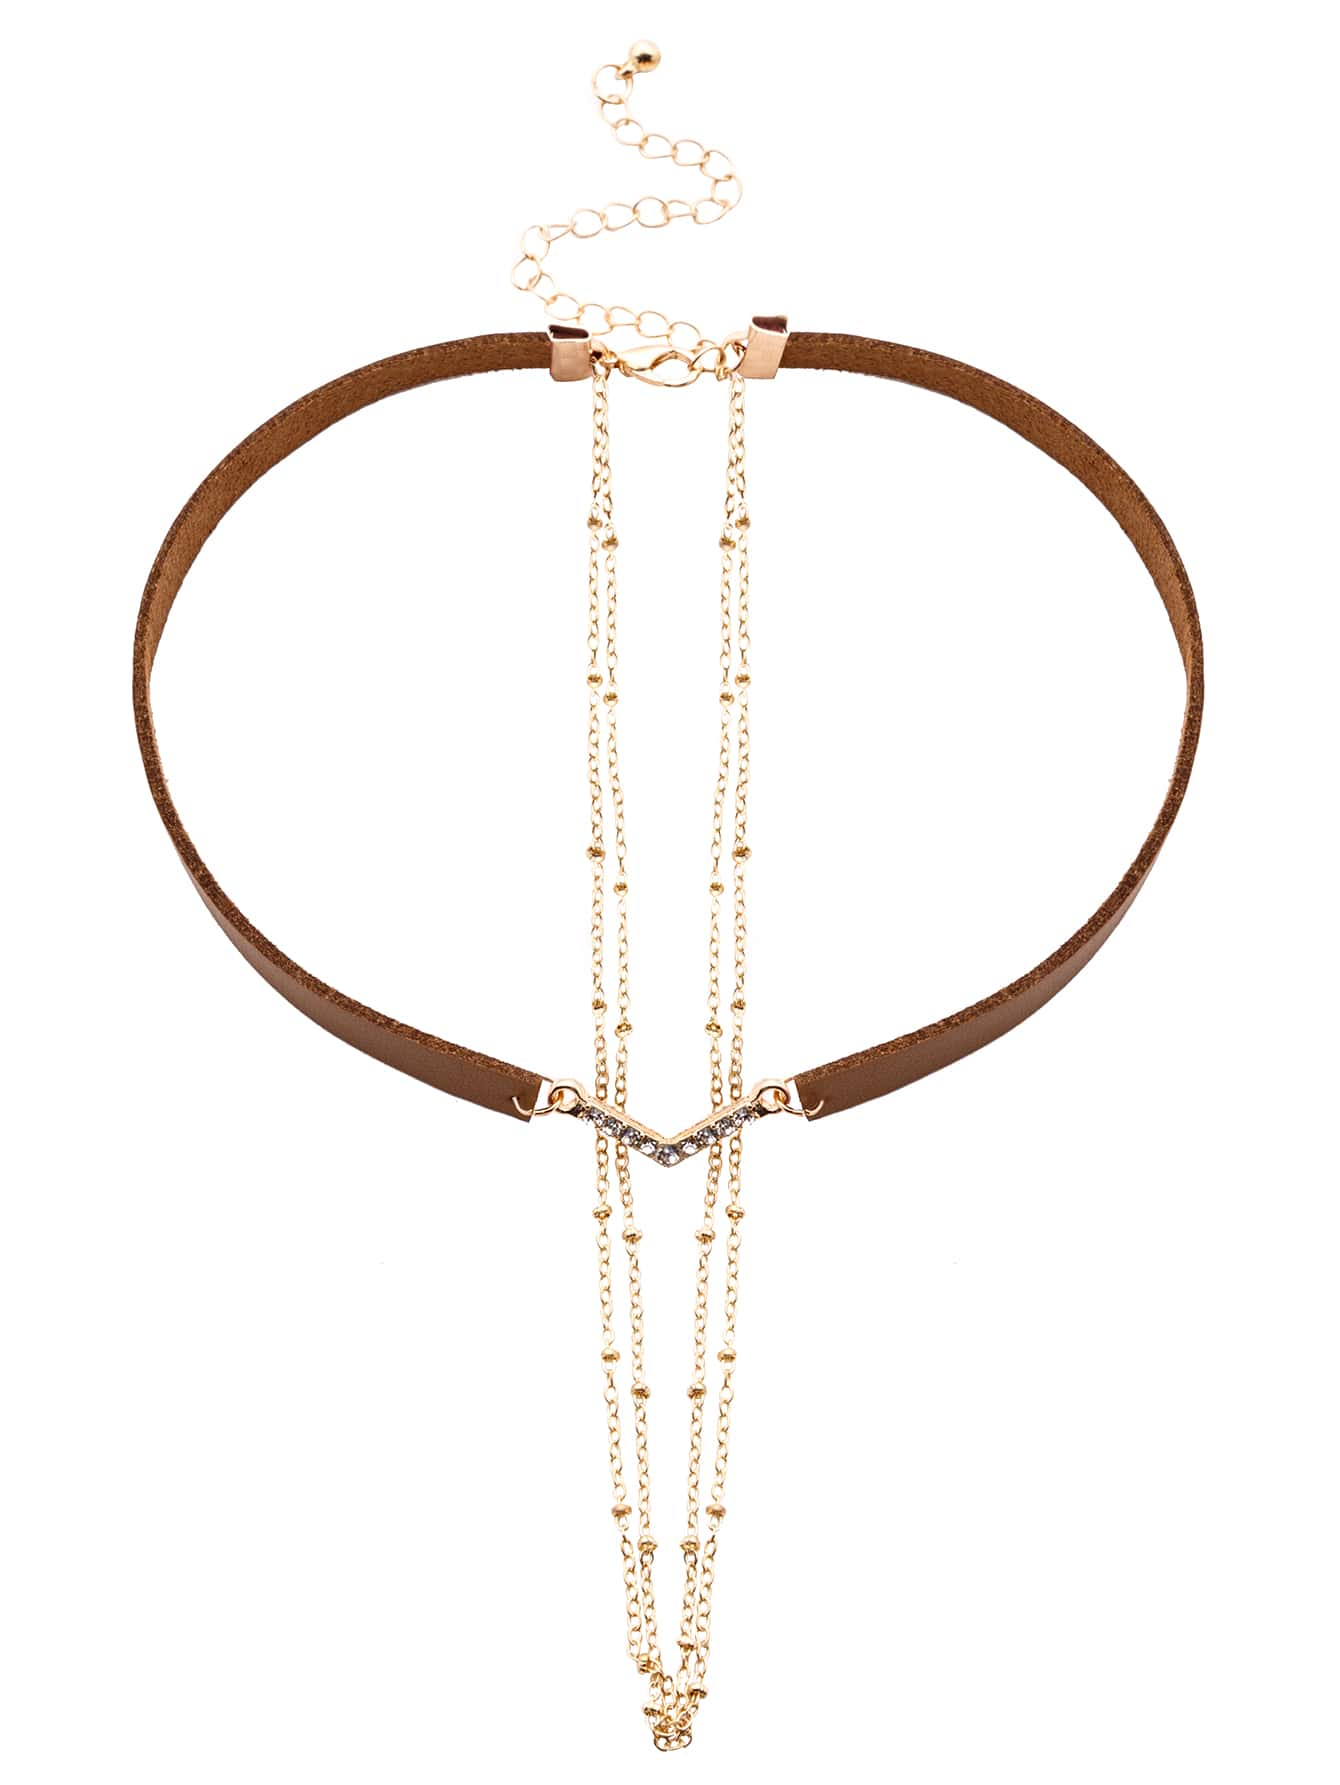 Brown Faux Leather Layered Chain Rhinestone Choker NecklaceBrown Faux Leather Layered Chain Rhinestone Choker Necklace<br><br>color: Brown<br>size: None